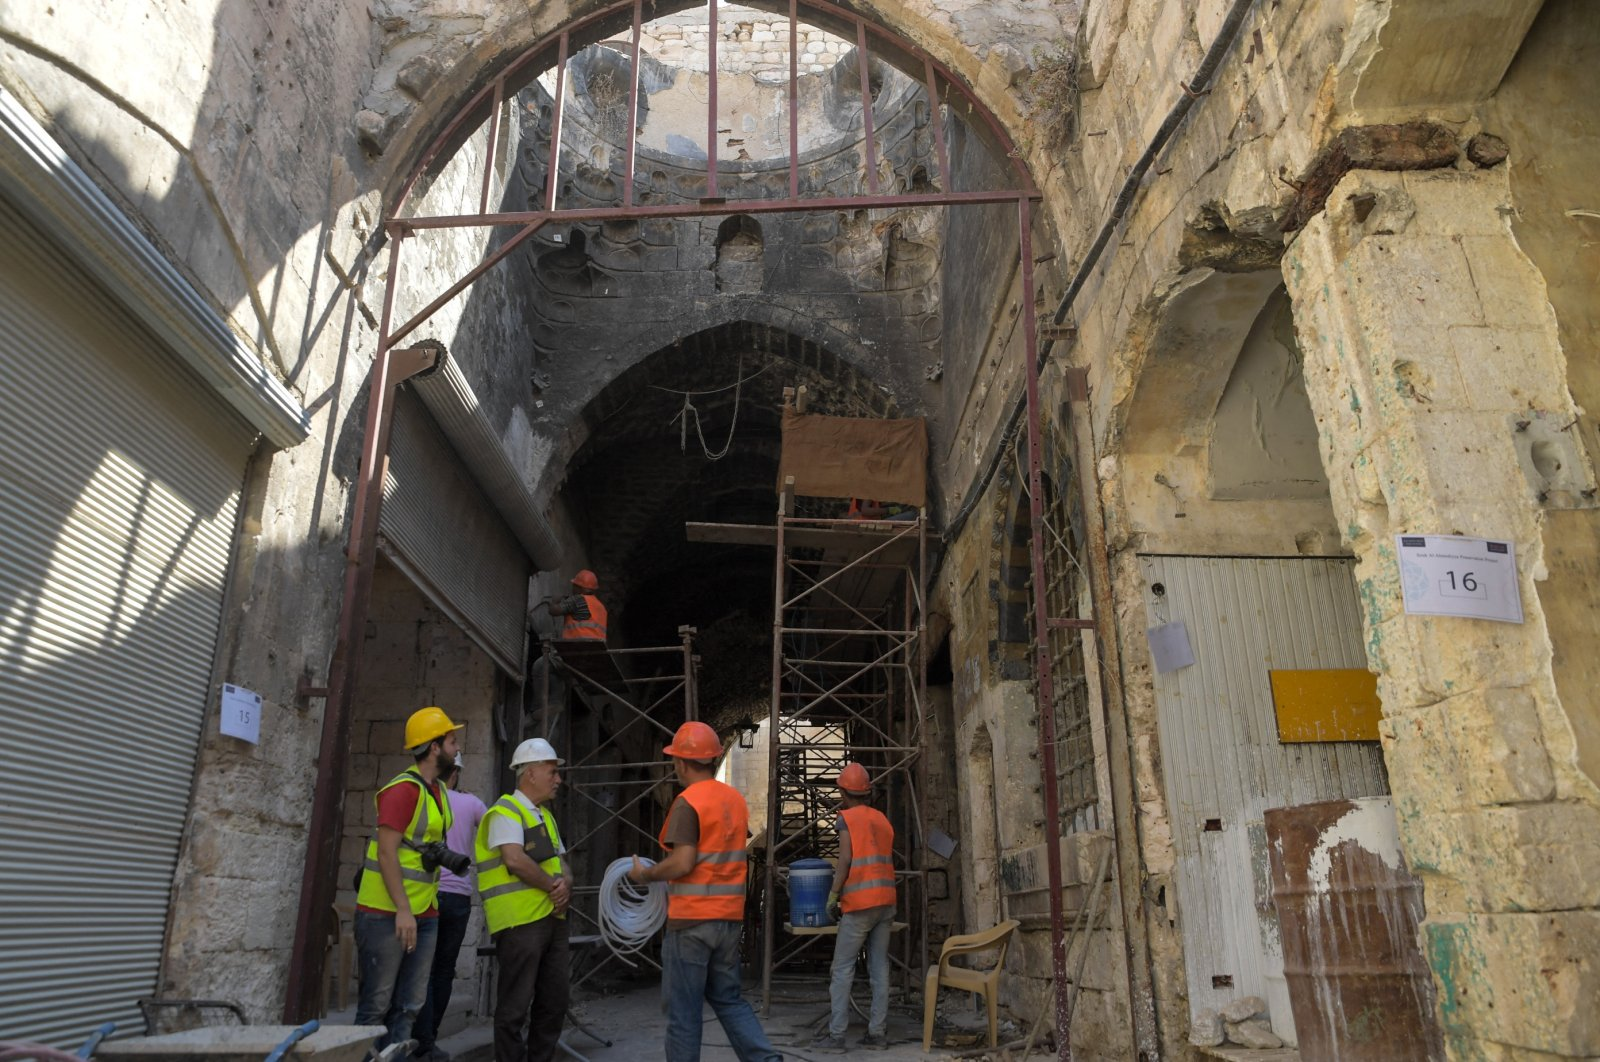 """Workers restore historic buildings in the """"Souq al-Habil"""" (ropes market) in the wake of years of conflict, Aleppo, Syria, on Aug. 29, 2021. (AFP Photo)"""